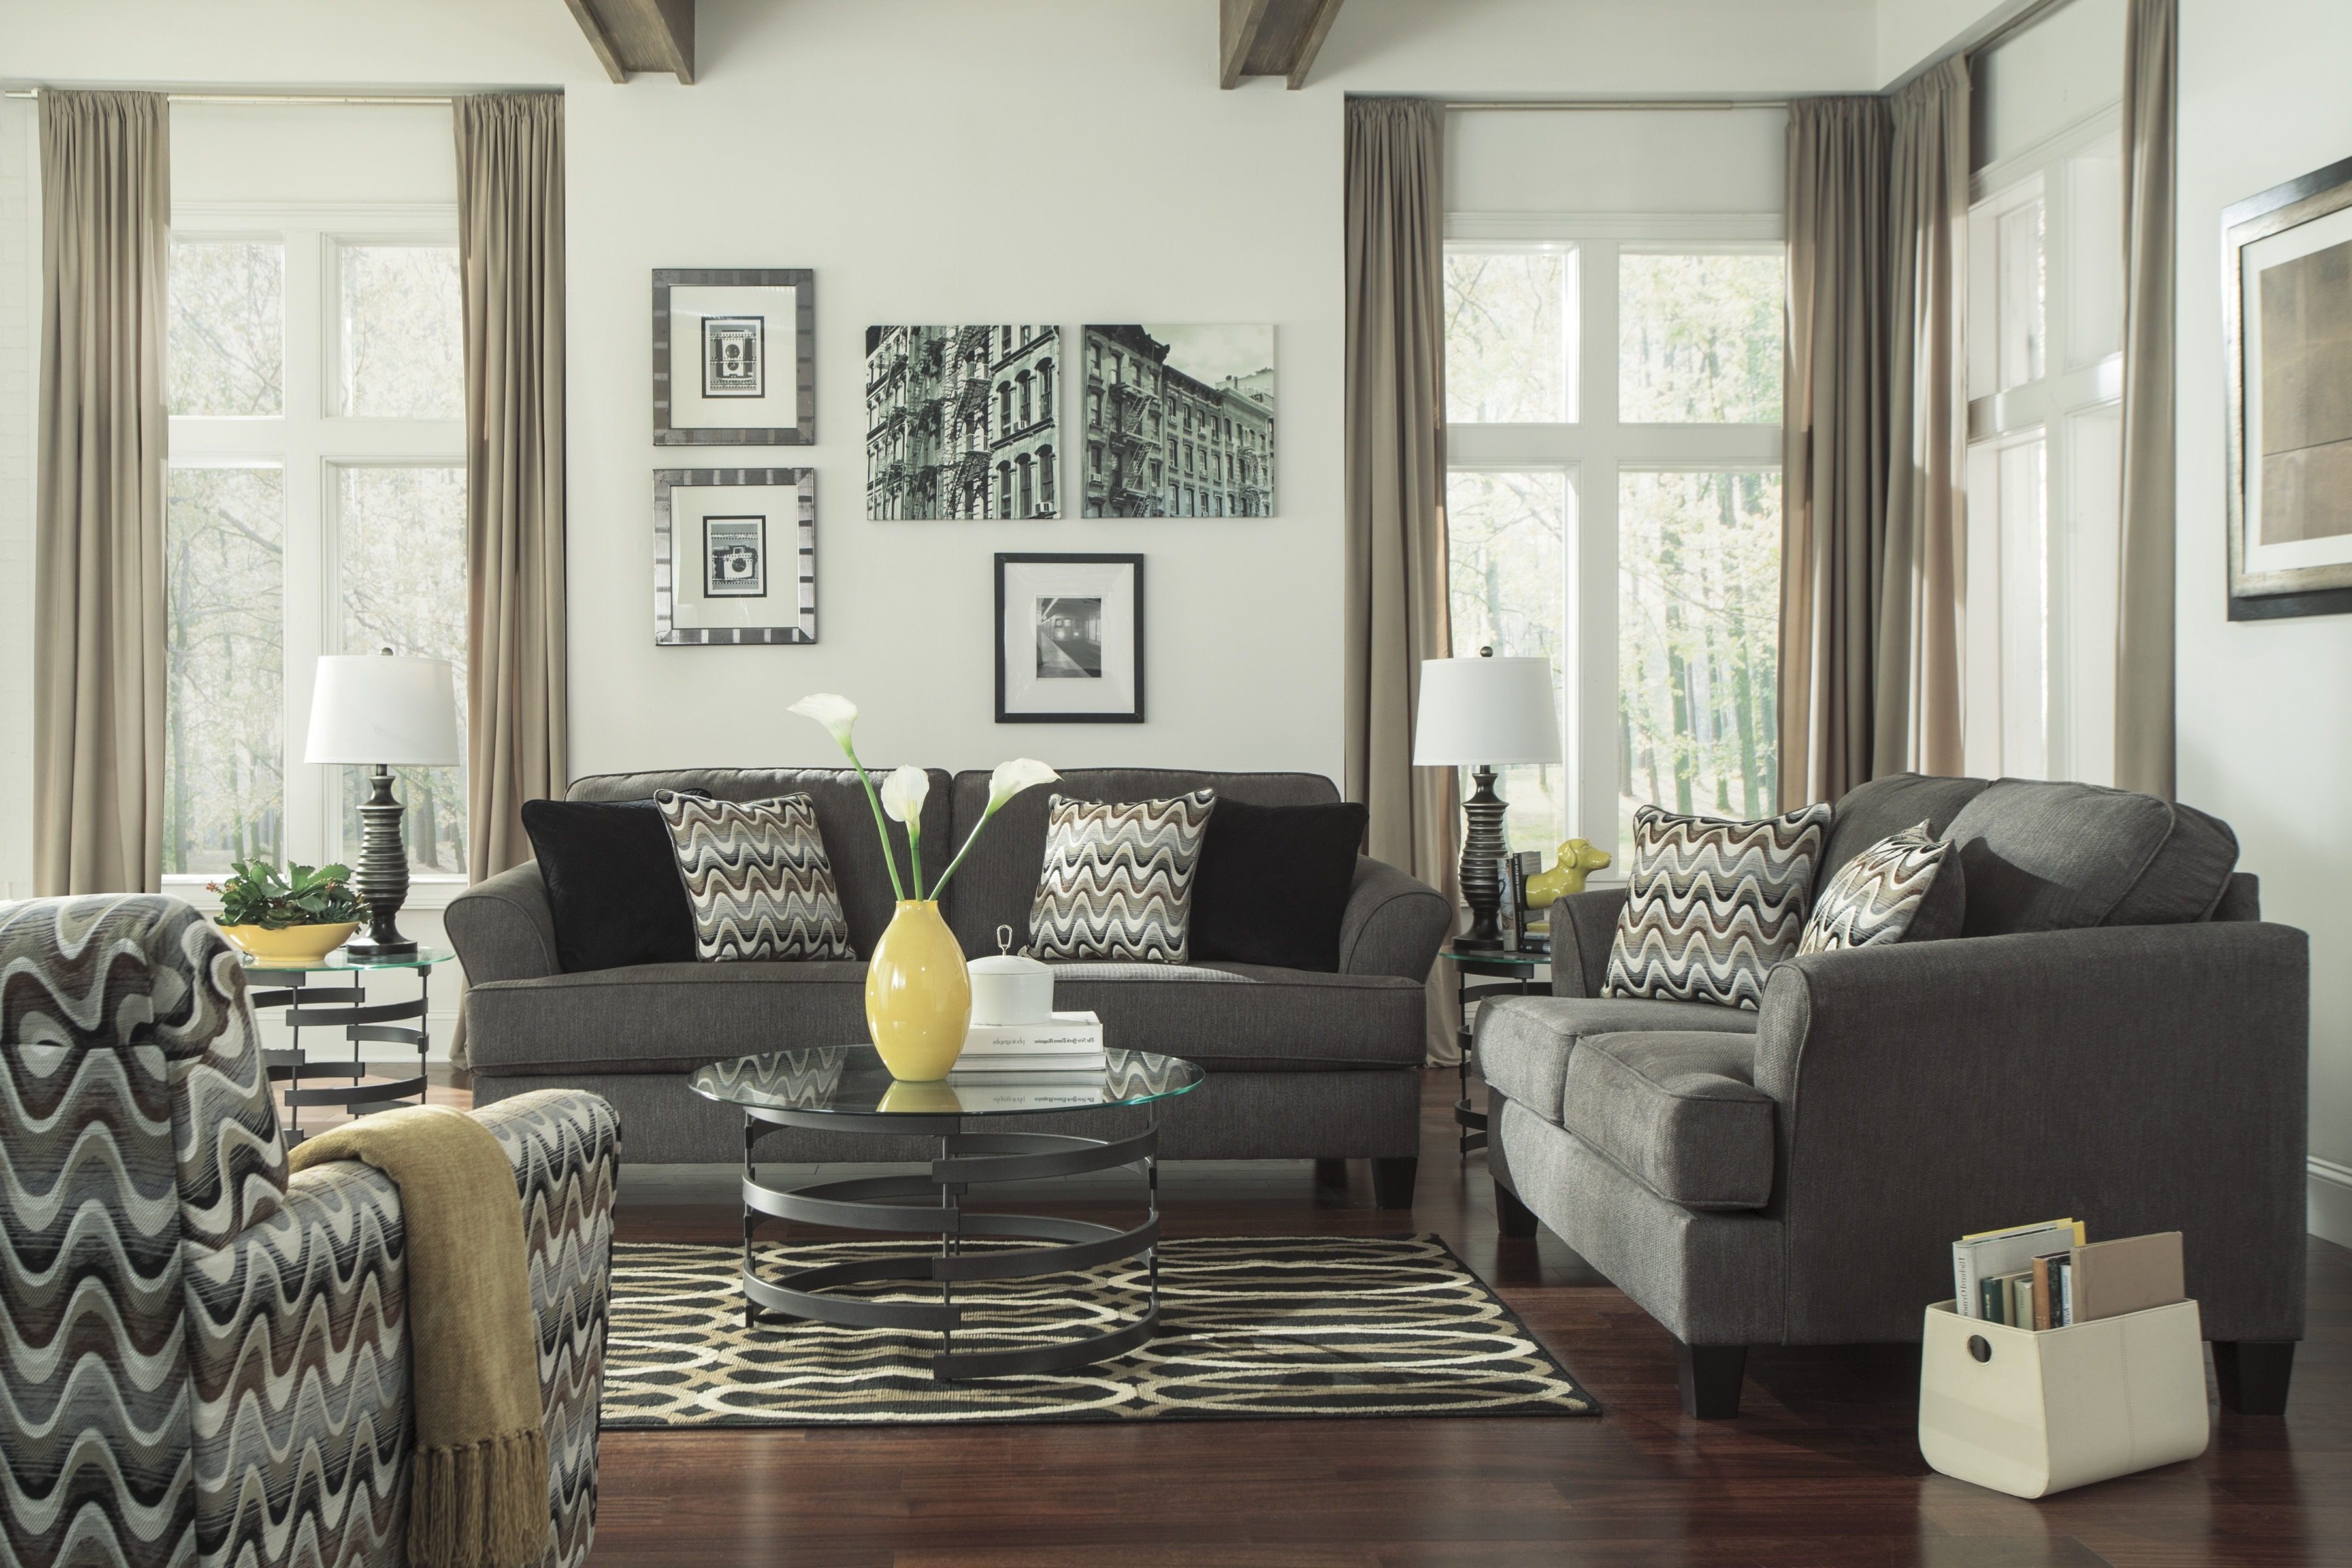 Sofa And Accent Chair Sets With Regard To Recent Ashley Furniture Gayler Steel 3Pc Living Room Set (View 9 of 15)